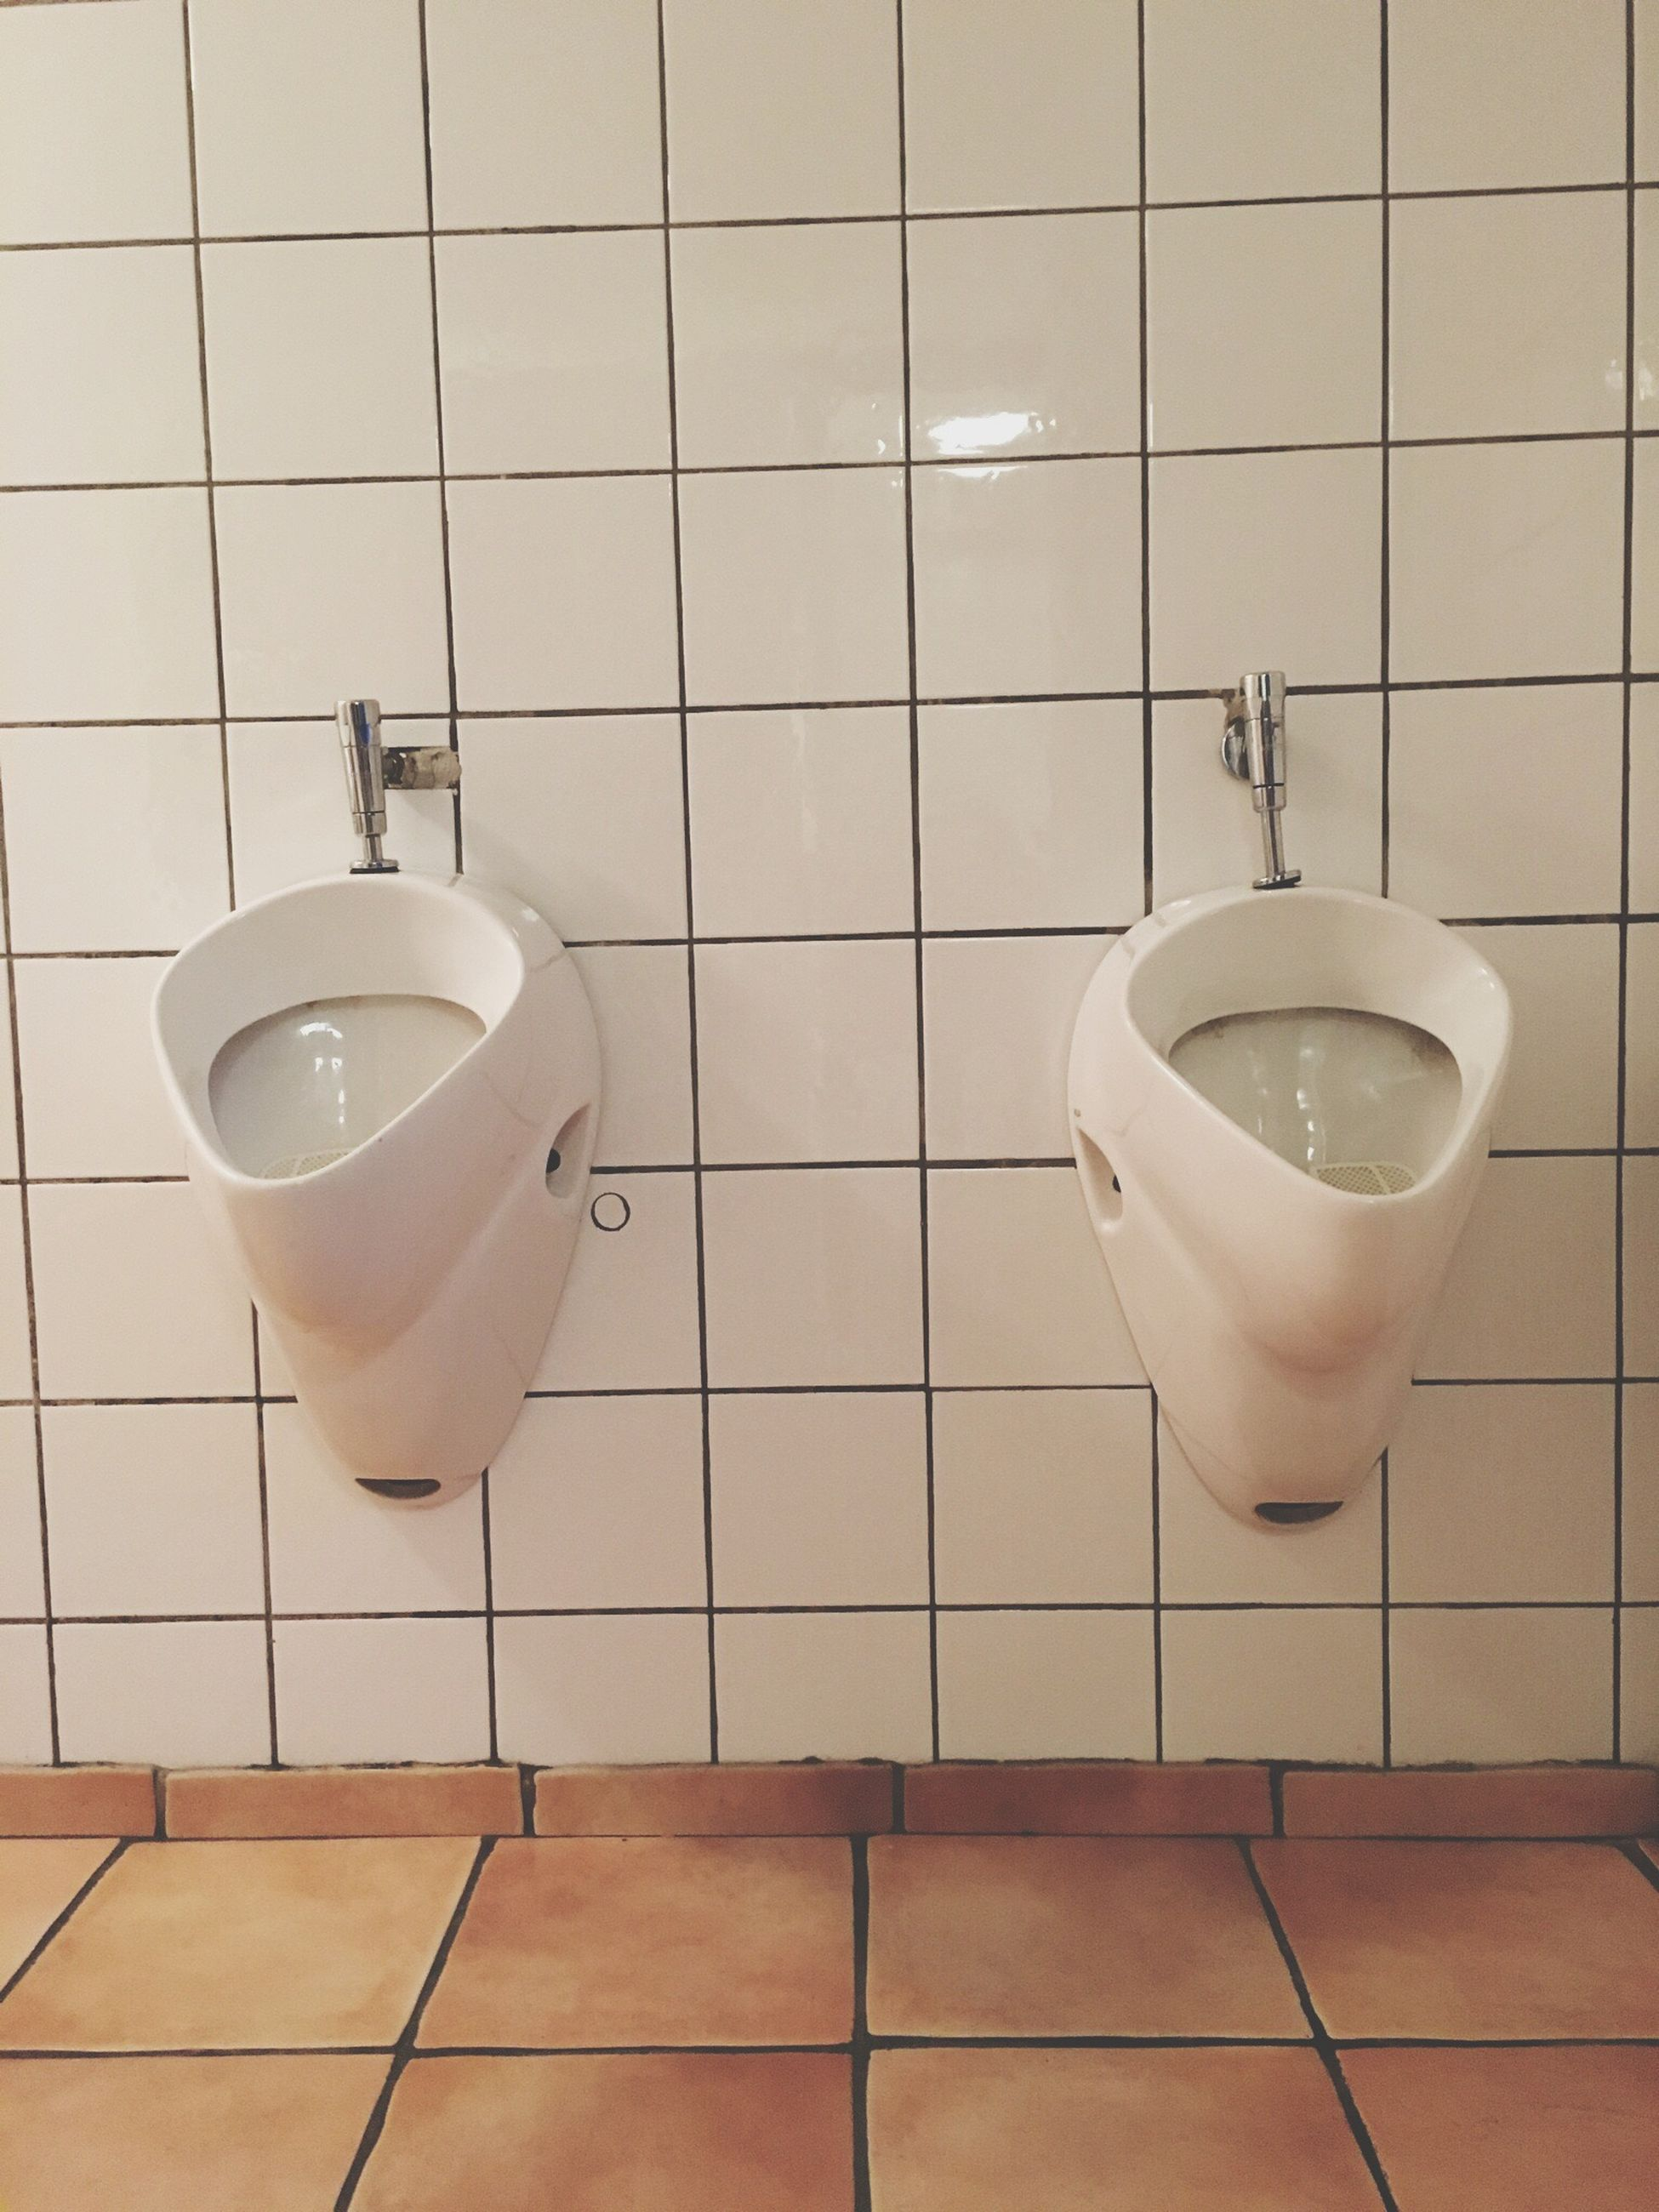 Urinals on white tile wall at public restroom